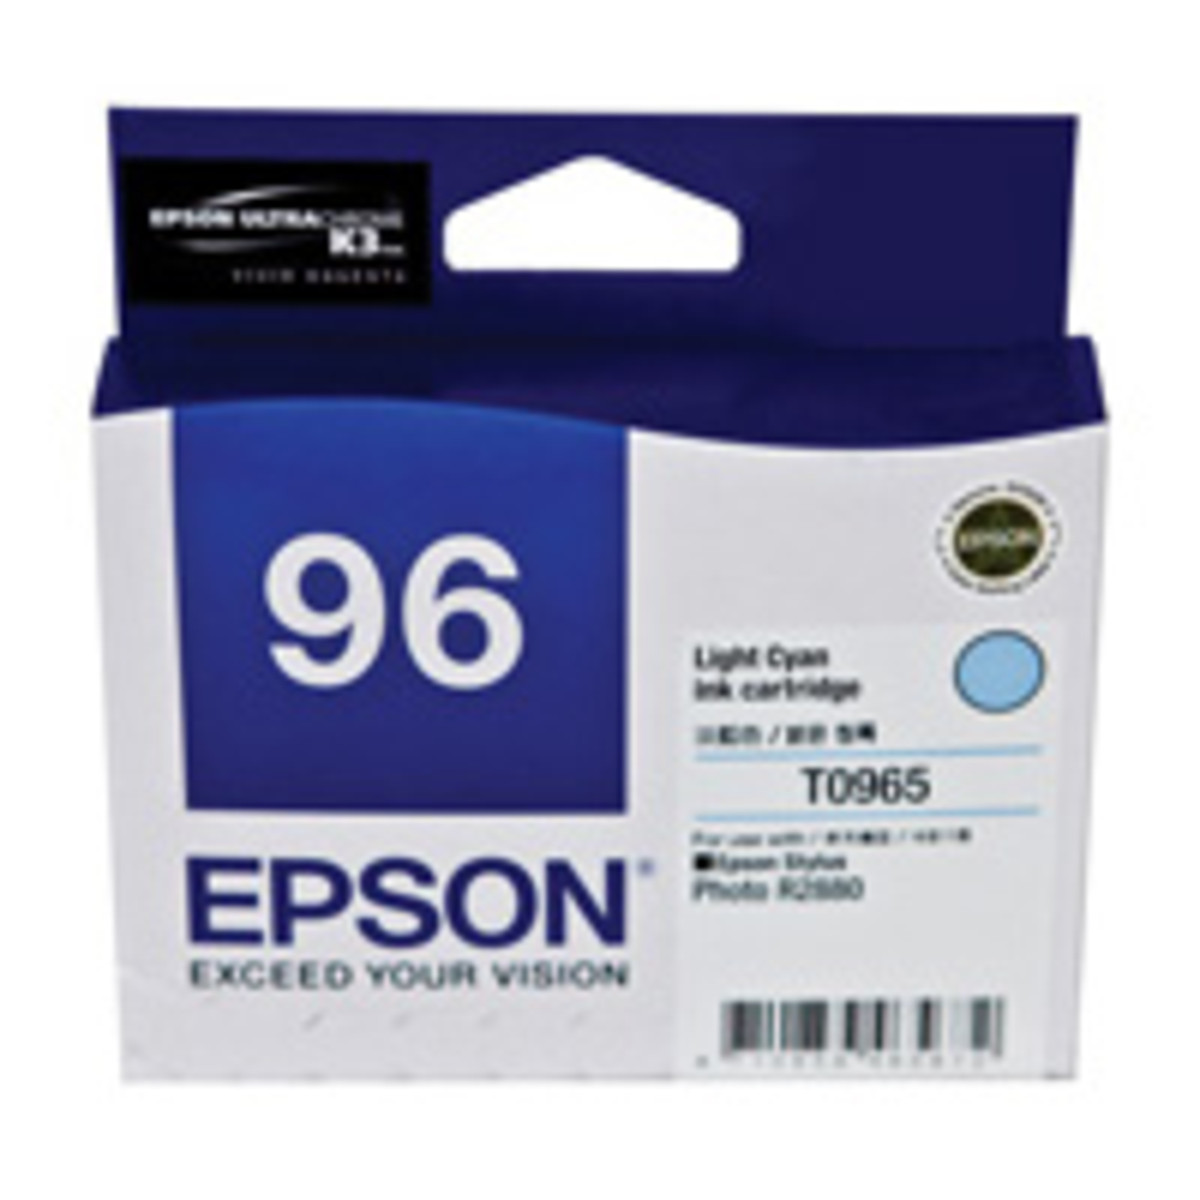 Epson 96 Light Cyan Ink Cartridge